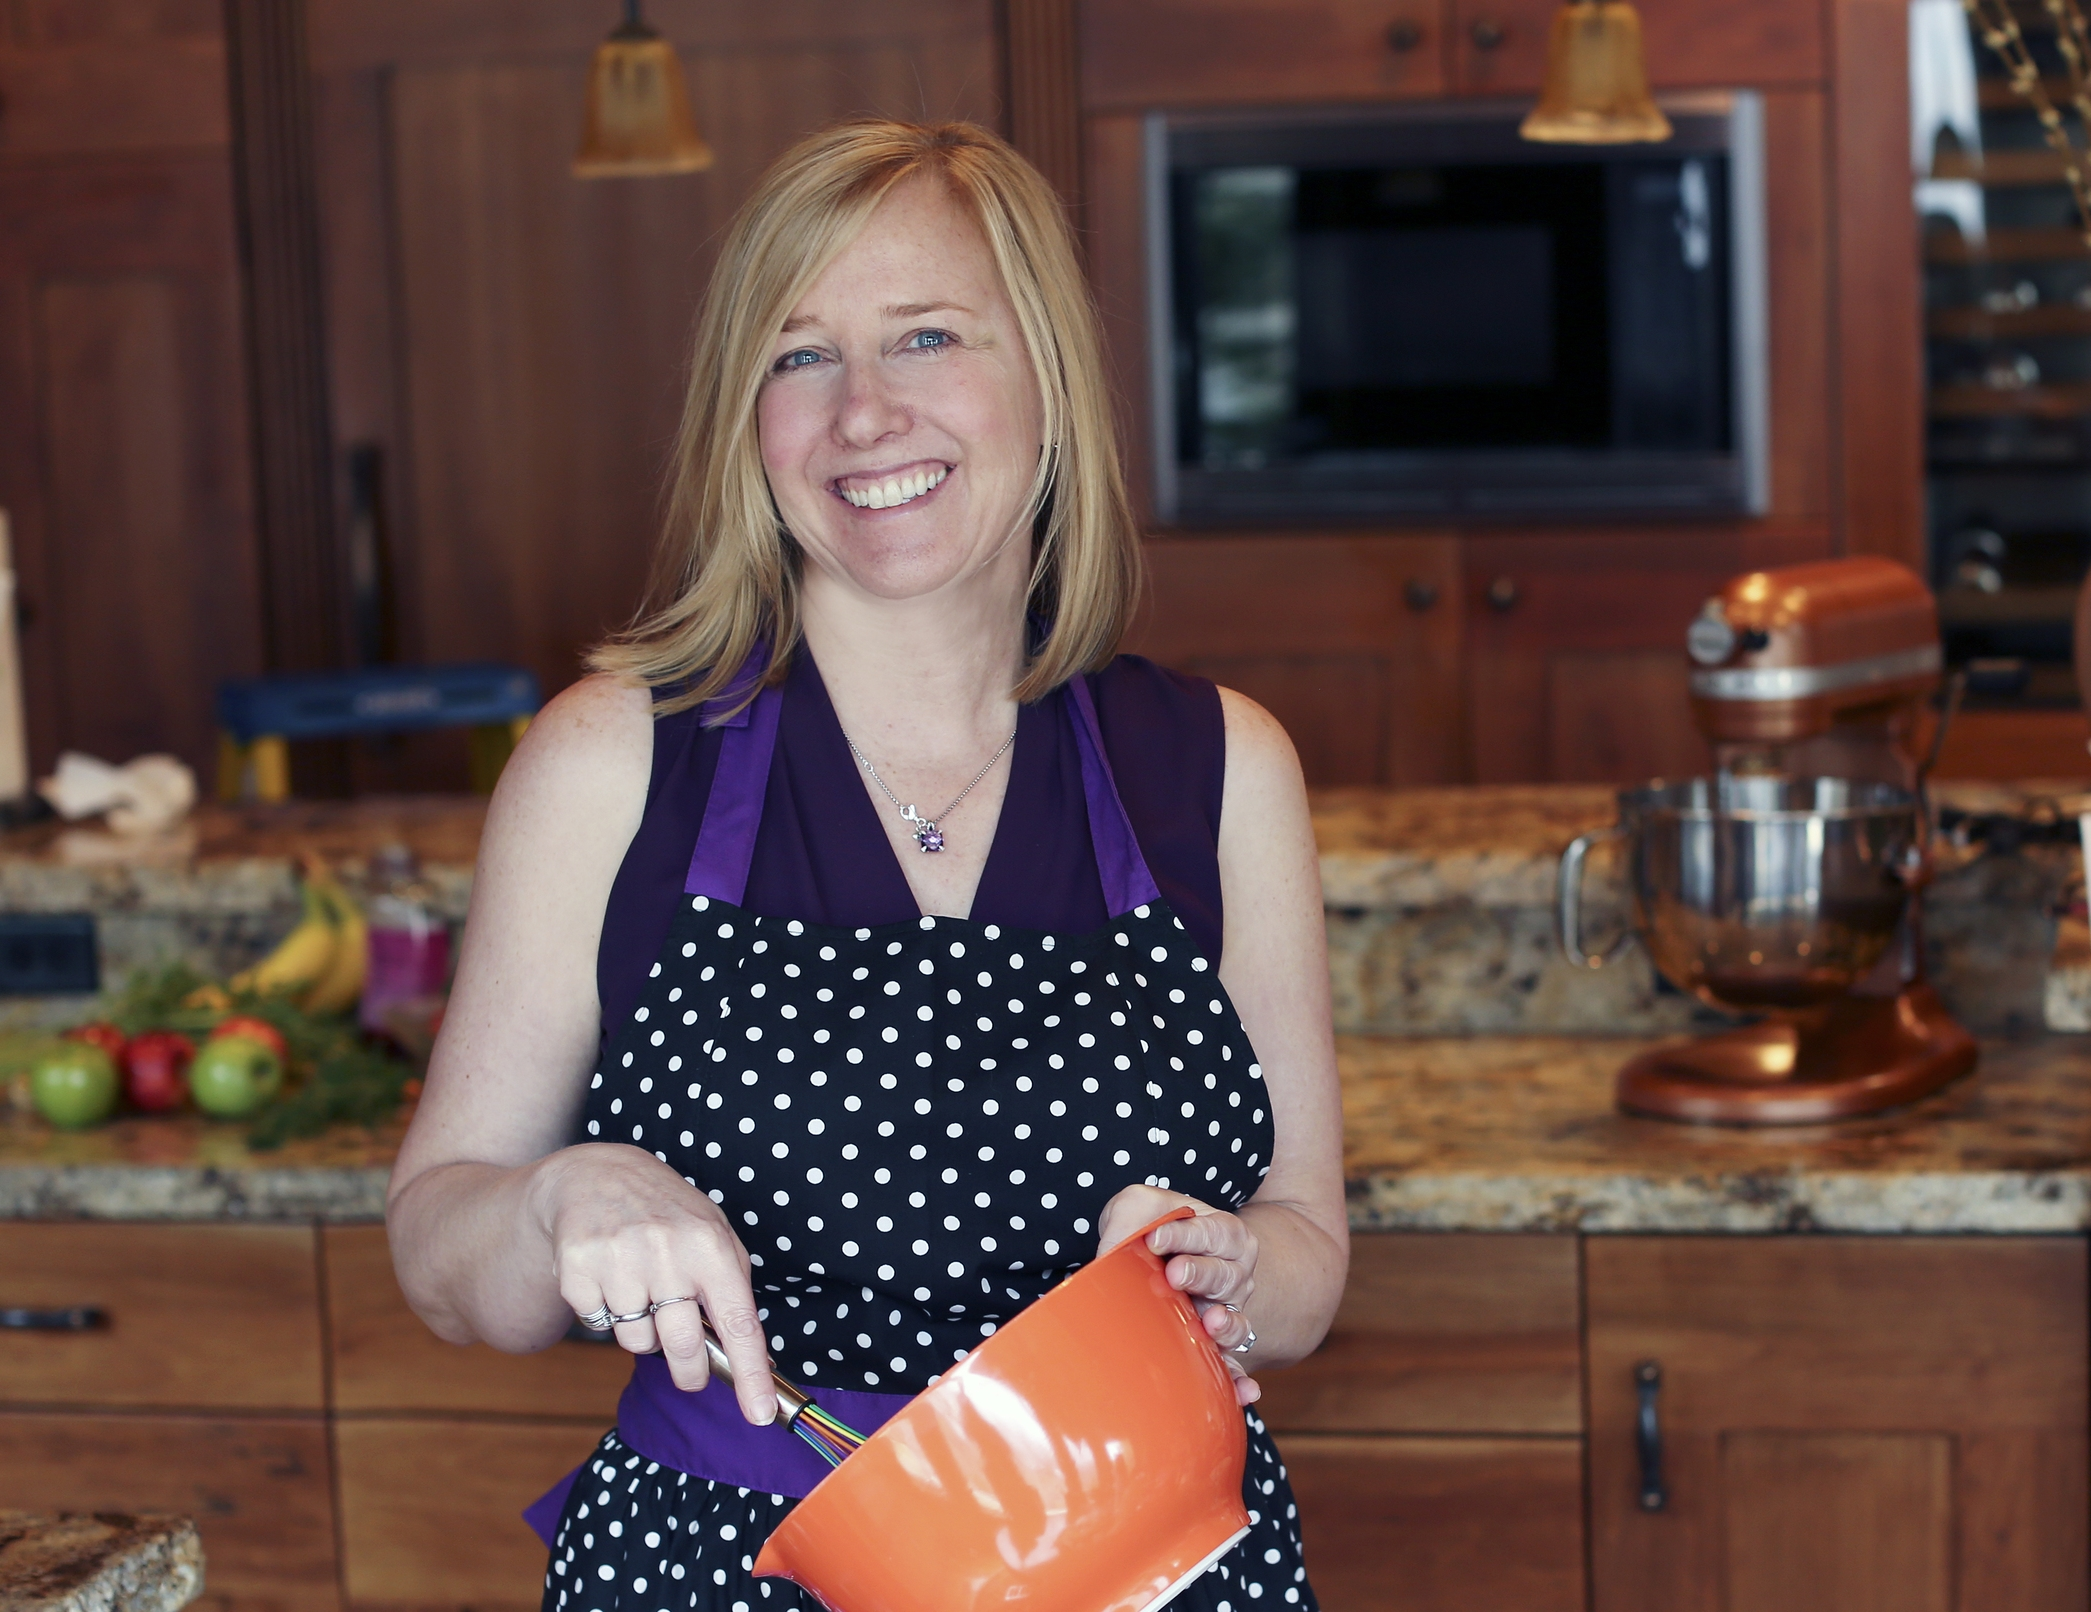 Master Blender Lisa|Ain't Your Mama's Cookin